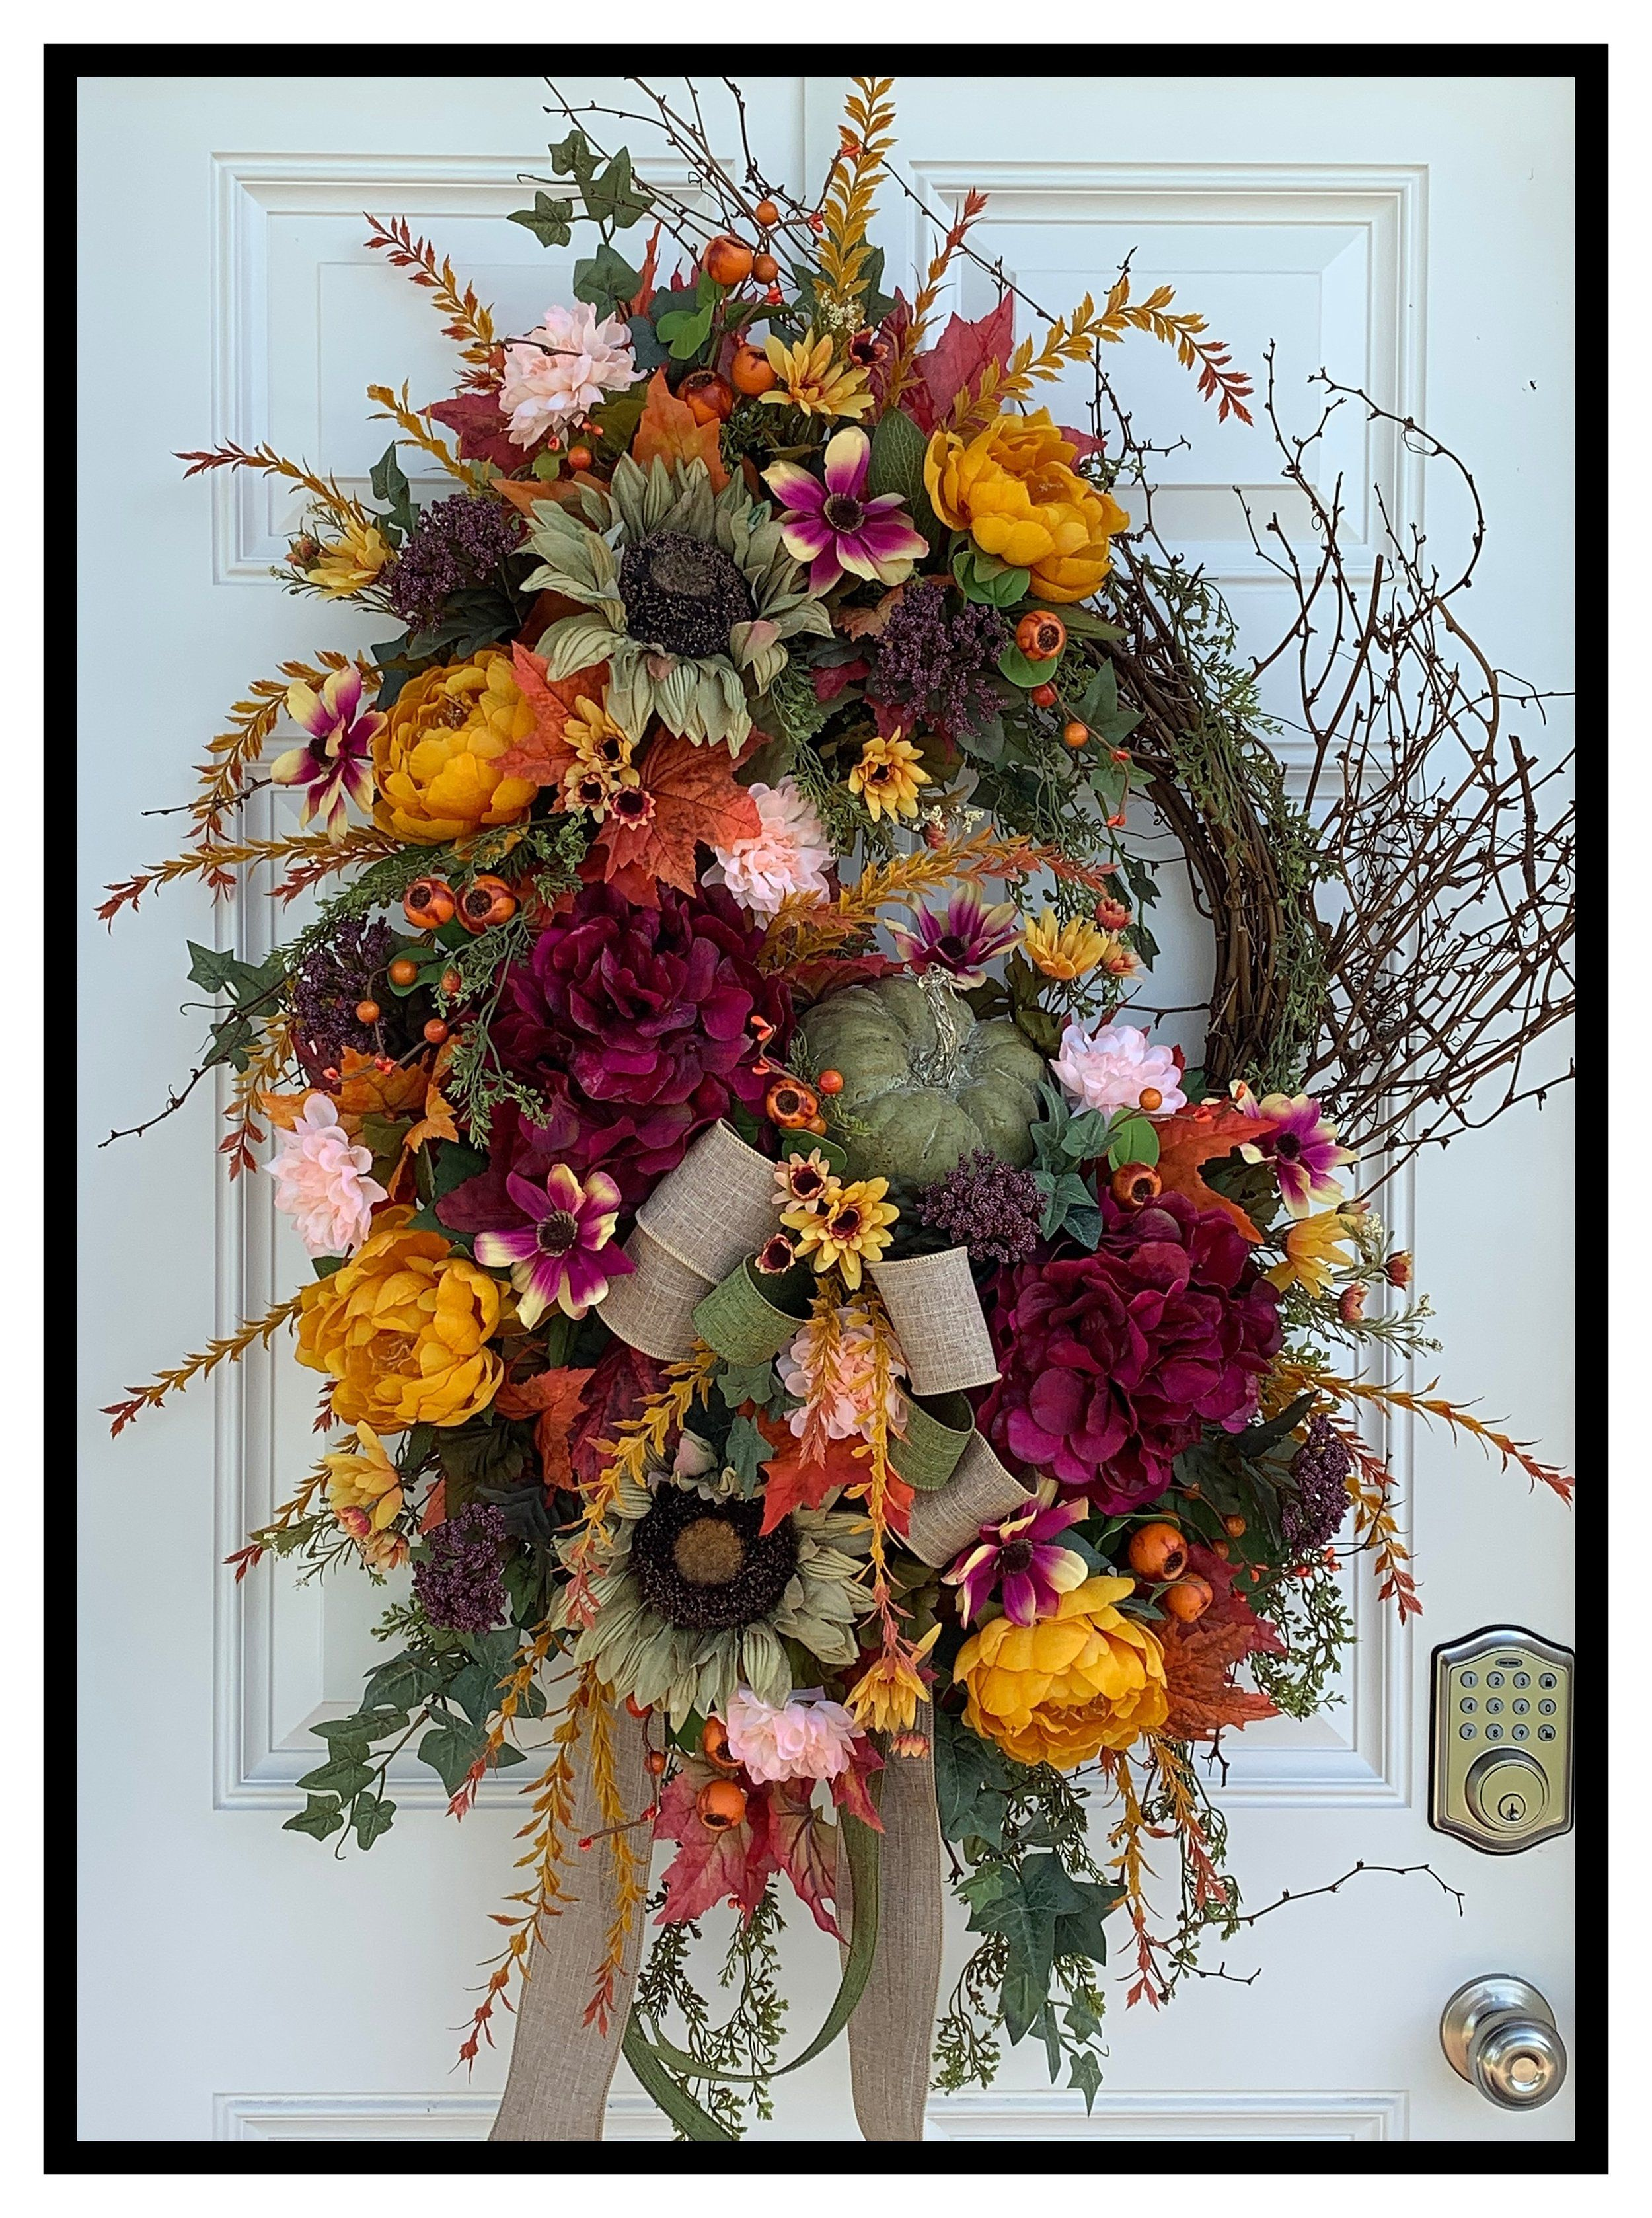 Extra Large Unique Autumn Wreath For Front Door Autumn Wreaths For Front Door Floral Door Wreaths Door Wreaths Fall